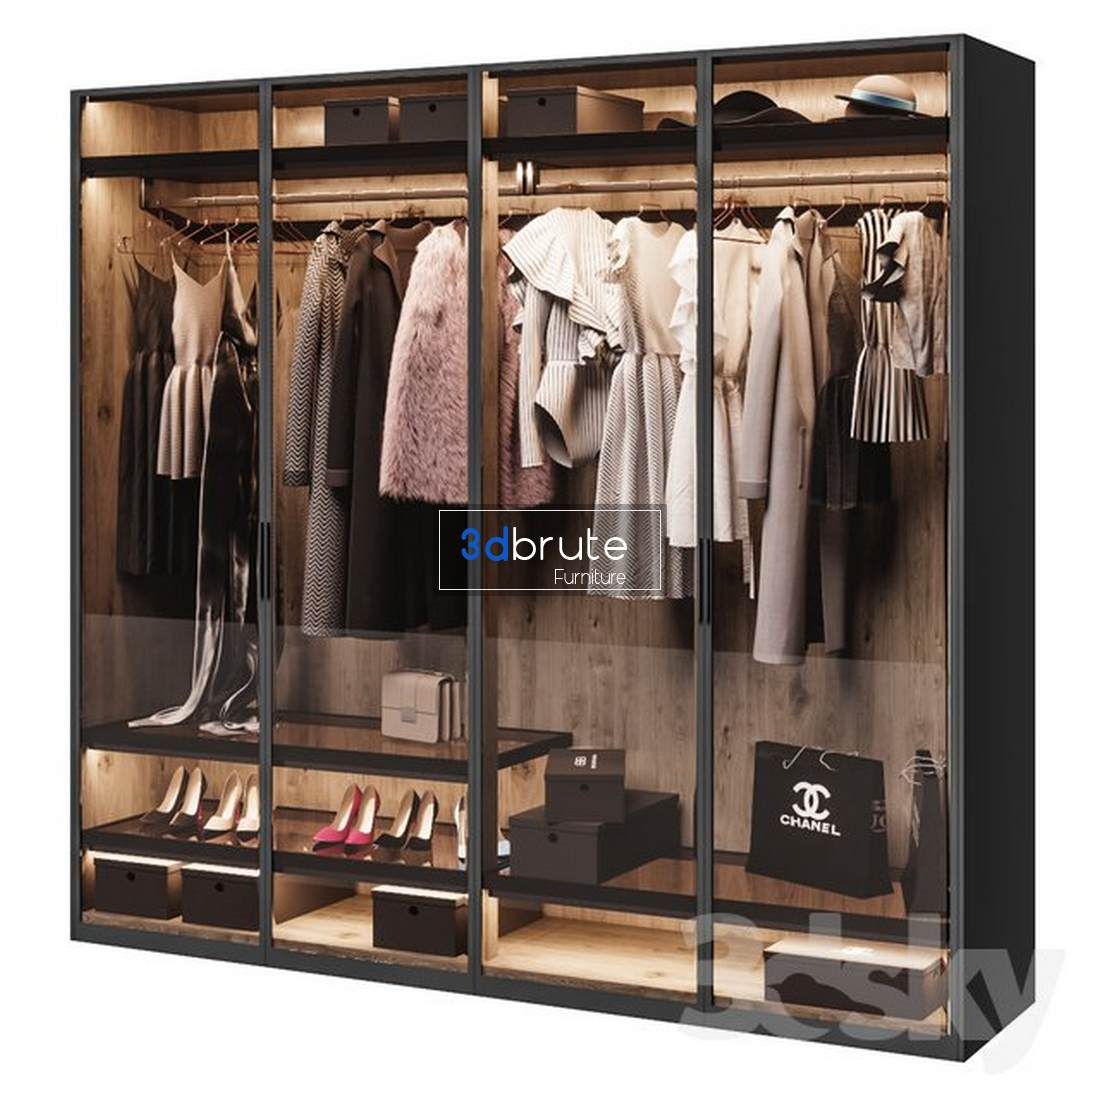 Poliform wardrobe 3dmodel - Buy and Download 3dsmax file -3dbrute